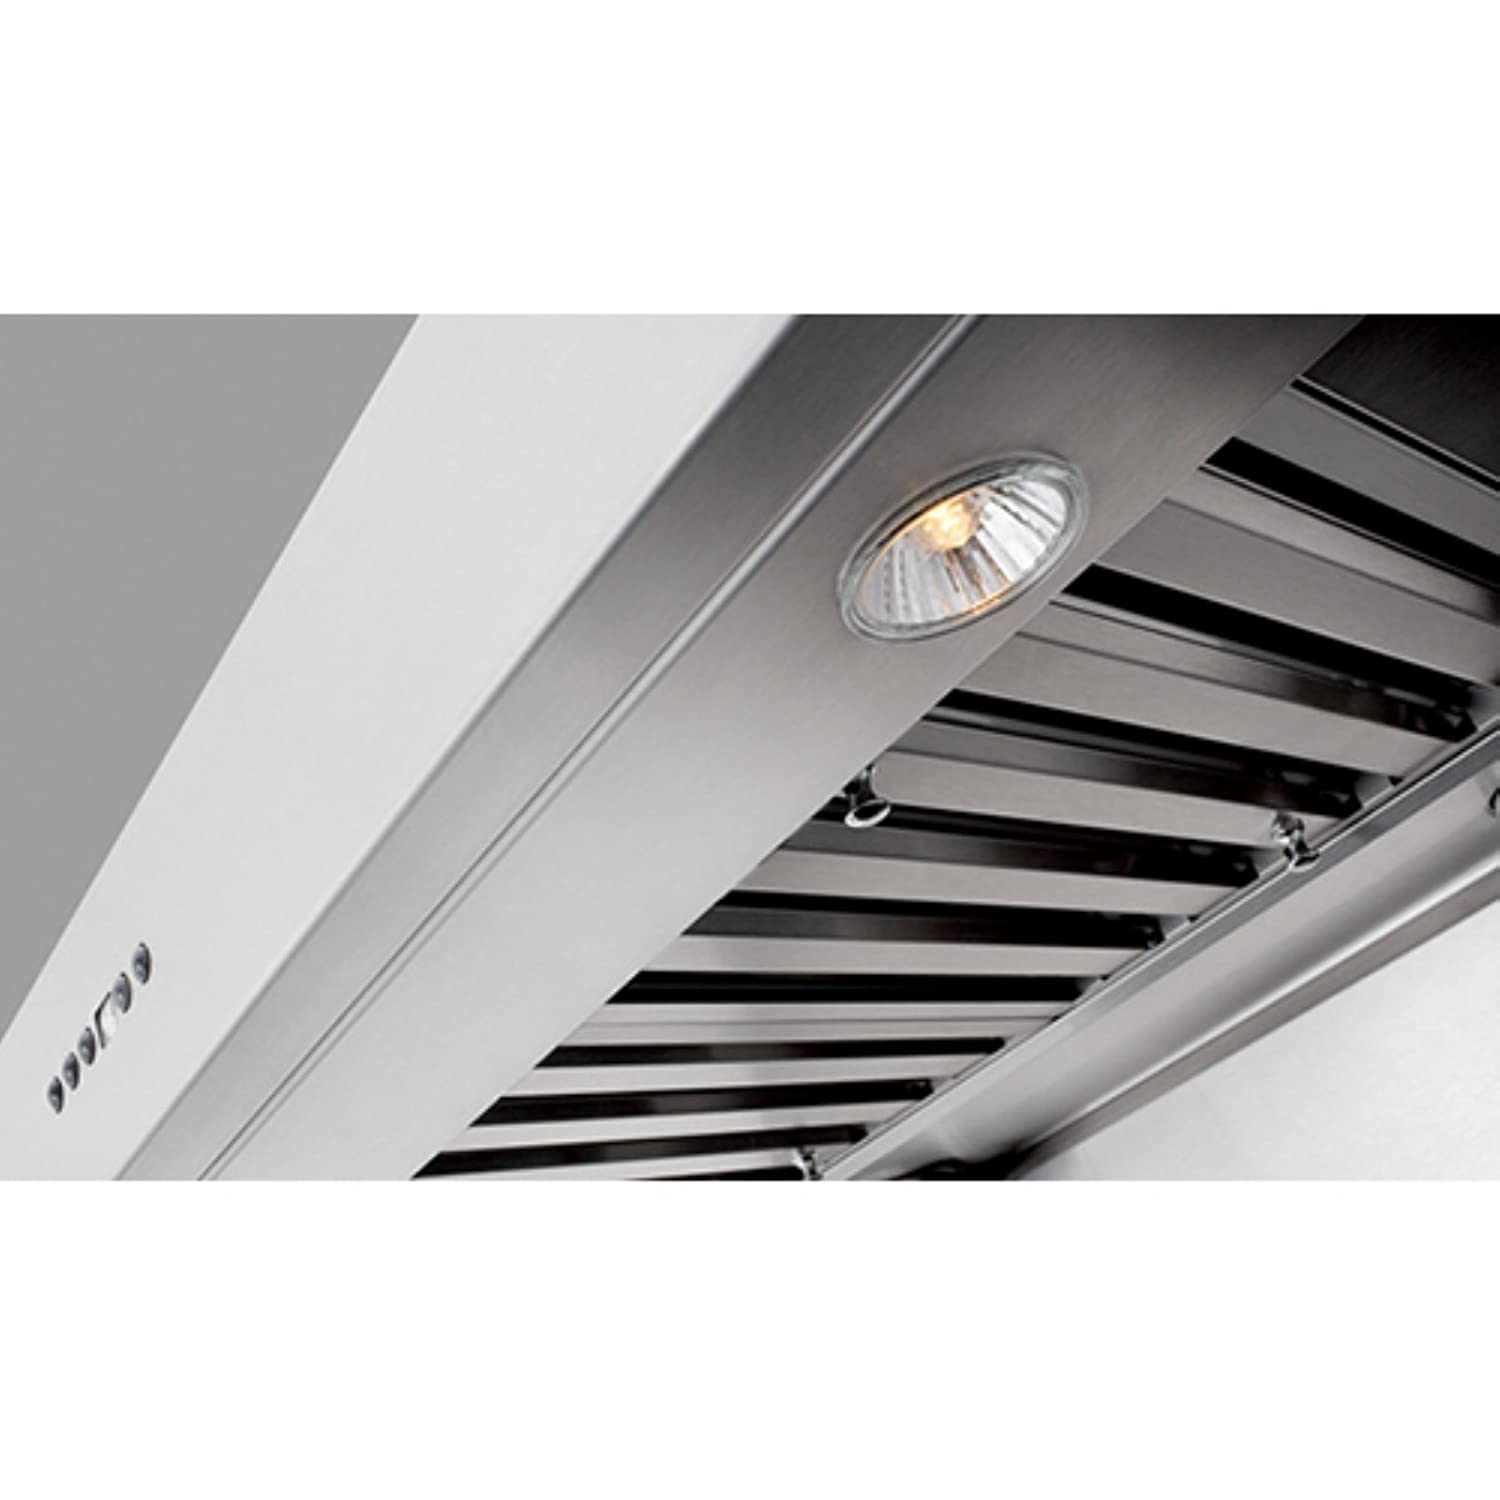 Superb Amazon.com: Zephyr AK7000BS Pro Style Under Cabinet Canopy Hood, Stainless  Steel: Appliances